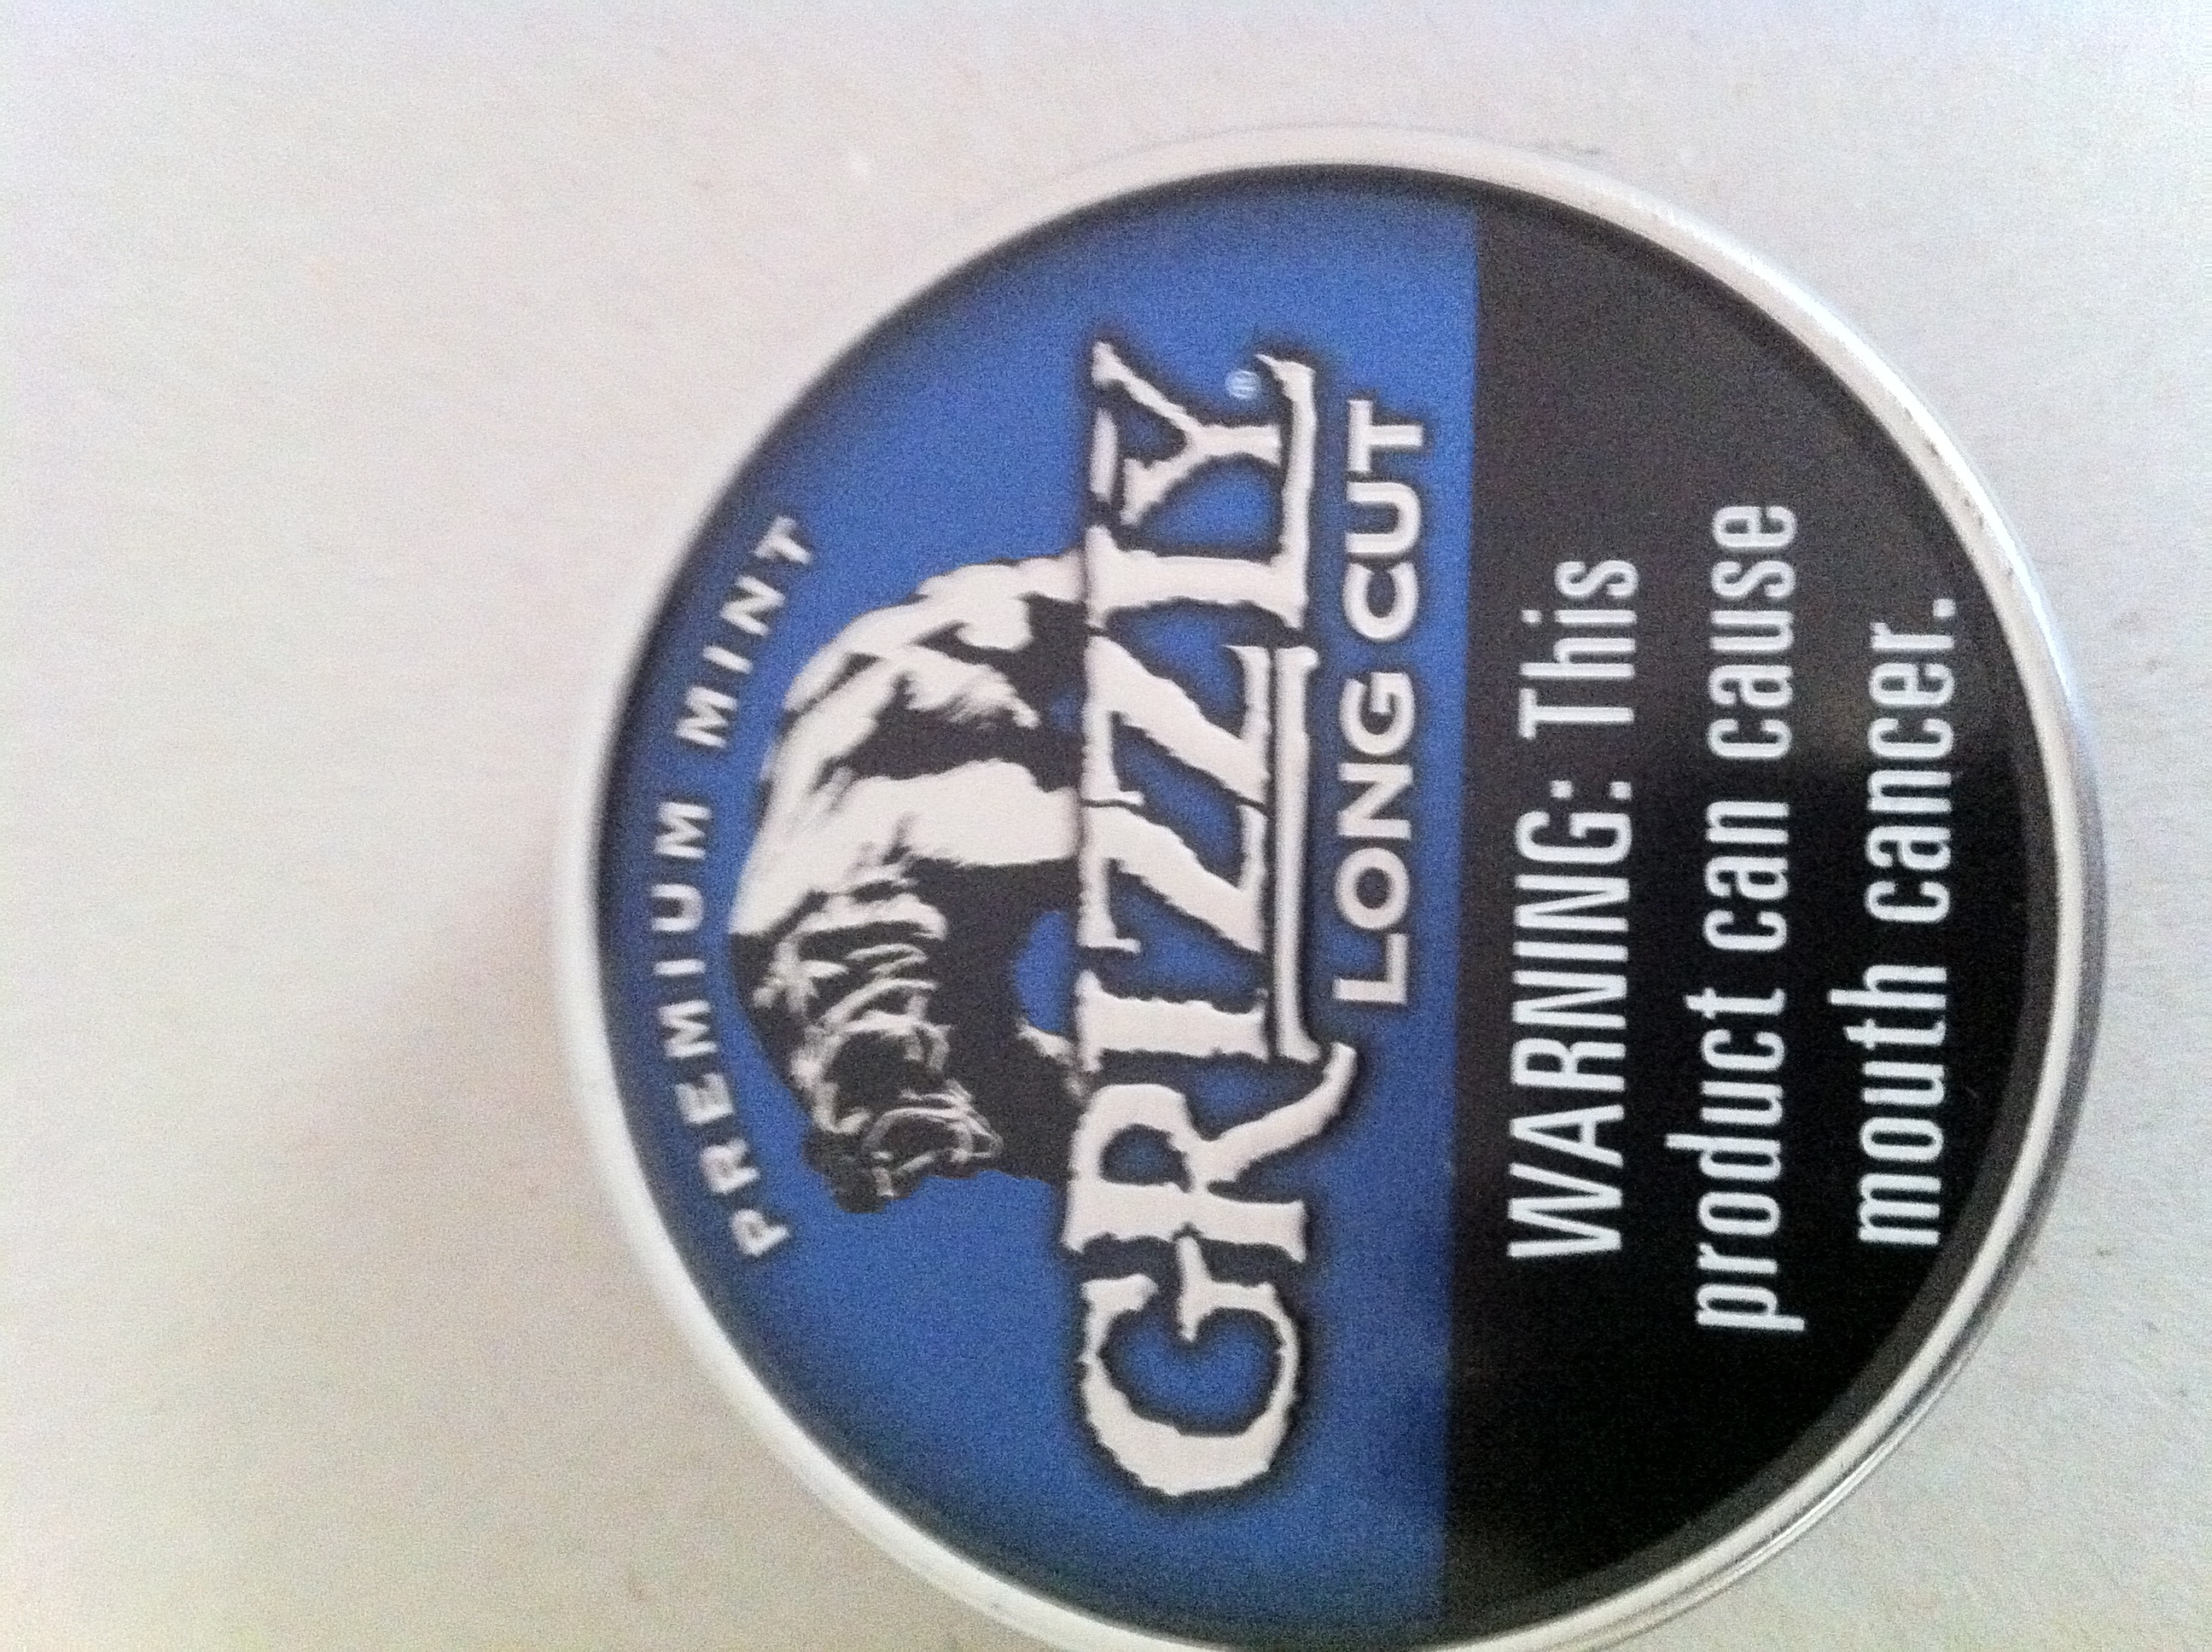 Grizzly (tobacco) - Wikipedia